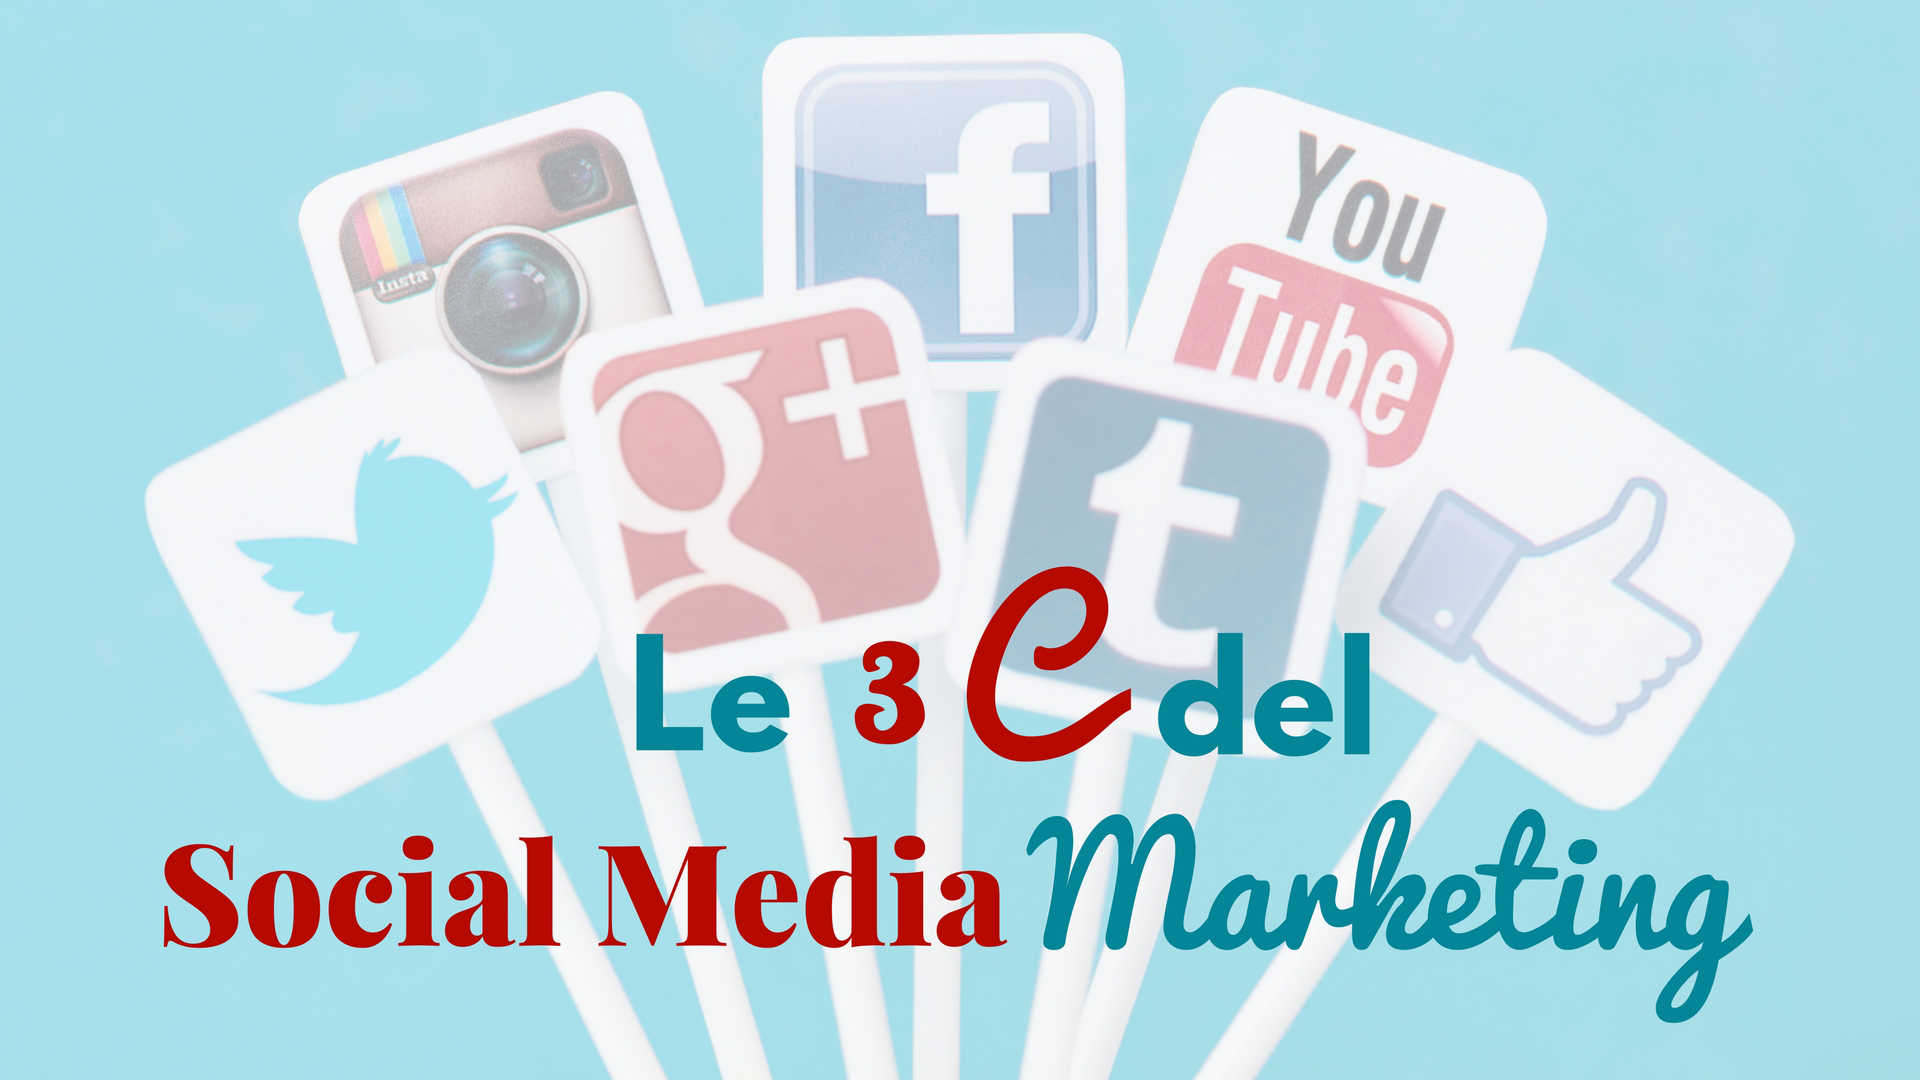 Le 3 C del Social Media Marketing